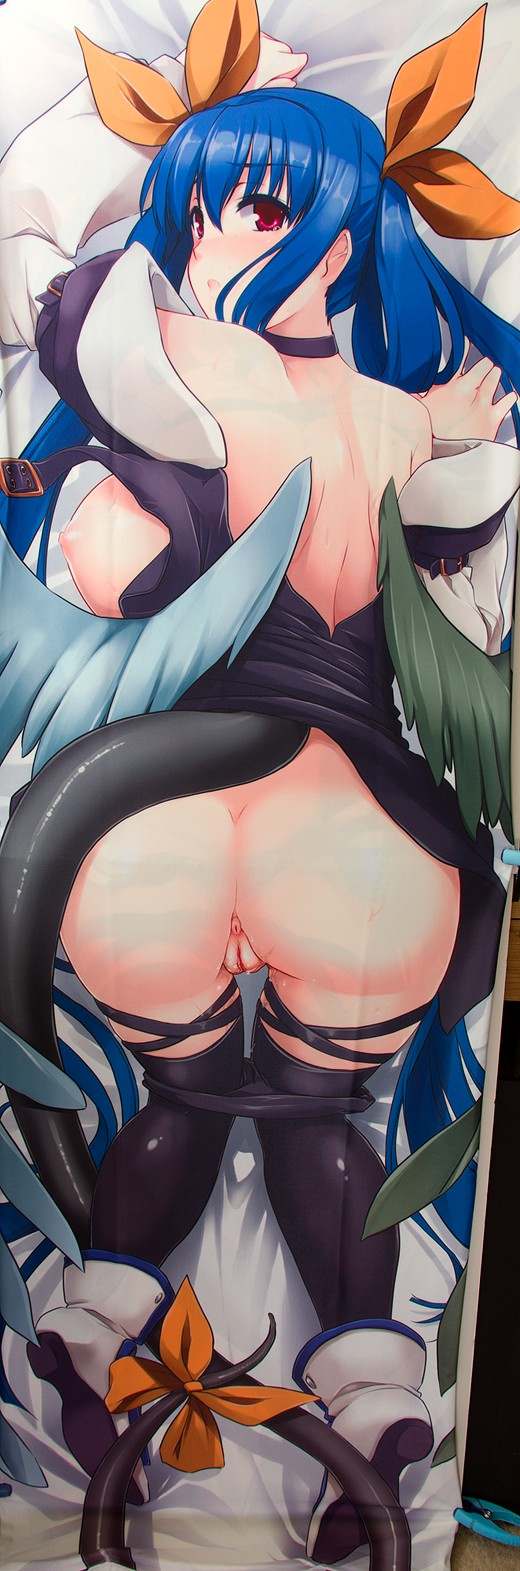 Dizzy Dakimakura Review